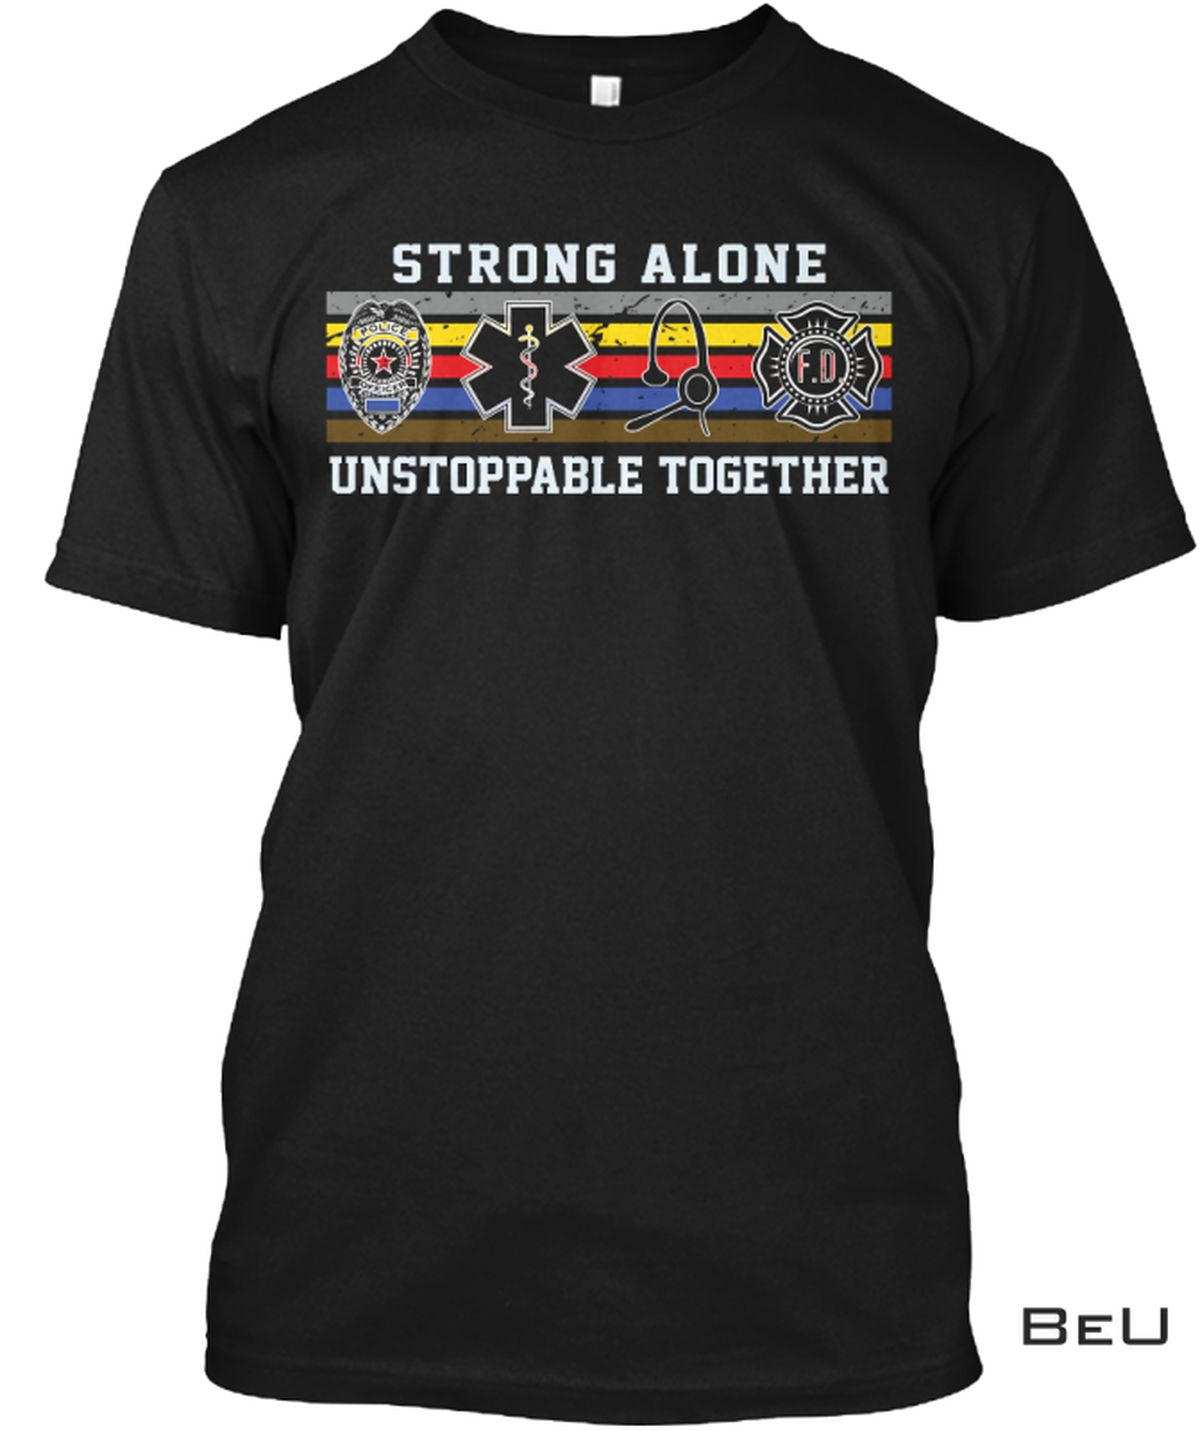 Dispatcher Unstoppable Together, hoodie